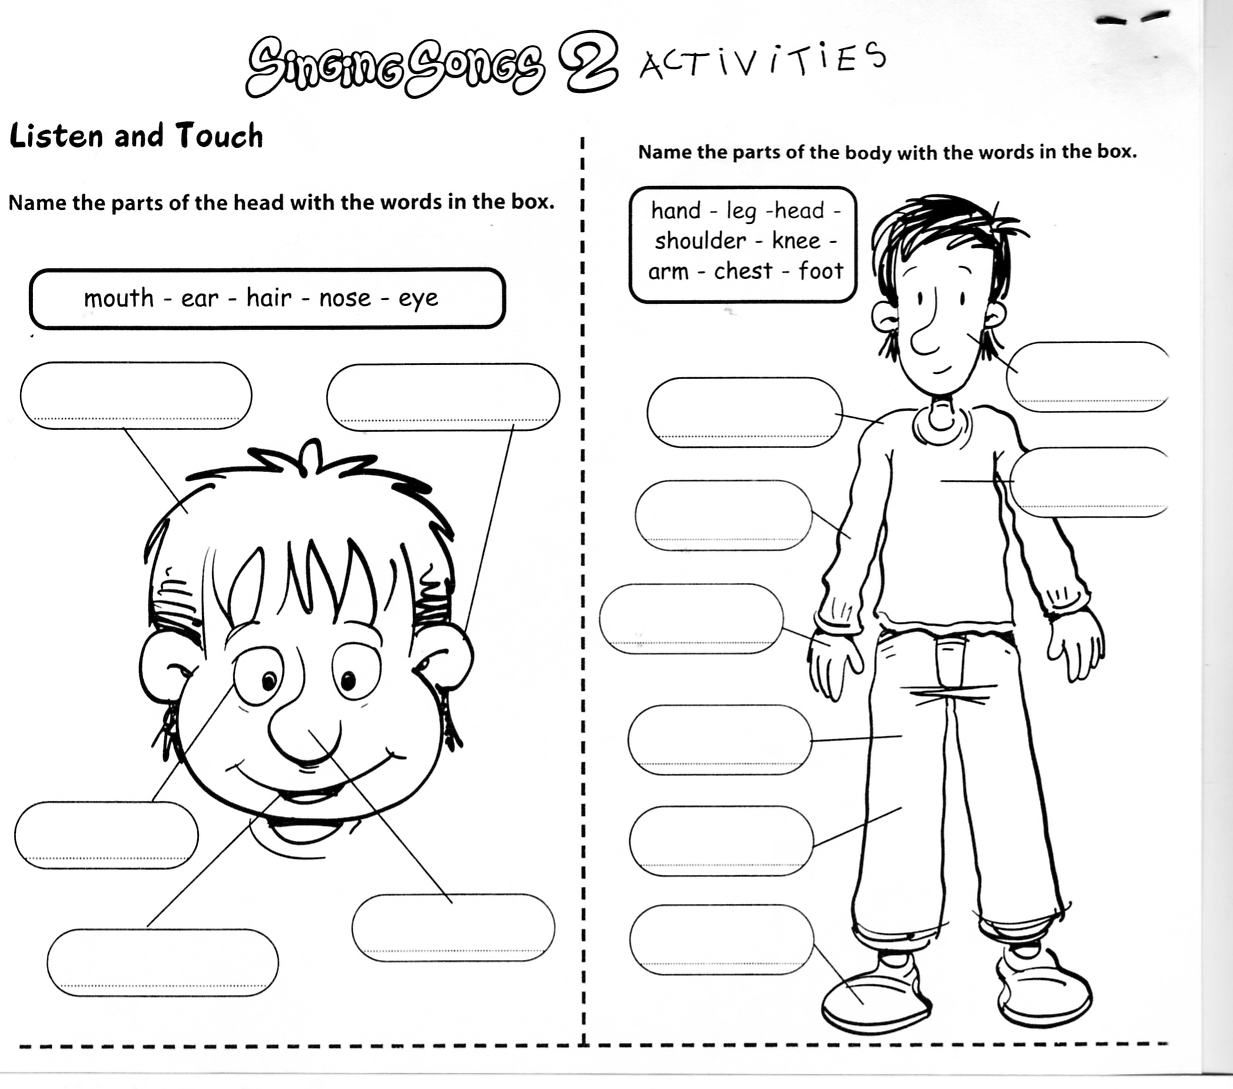 worksheet Spanish Worksheets Body Parts learningenglish esl body worksheets english this esol worksheet is intended to familiarize the children with parts of their but also allowing color in thei